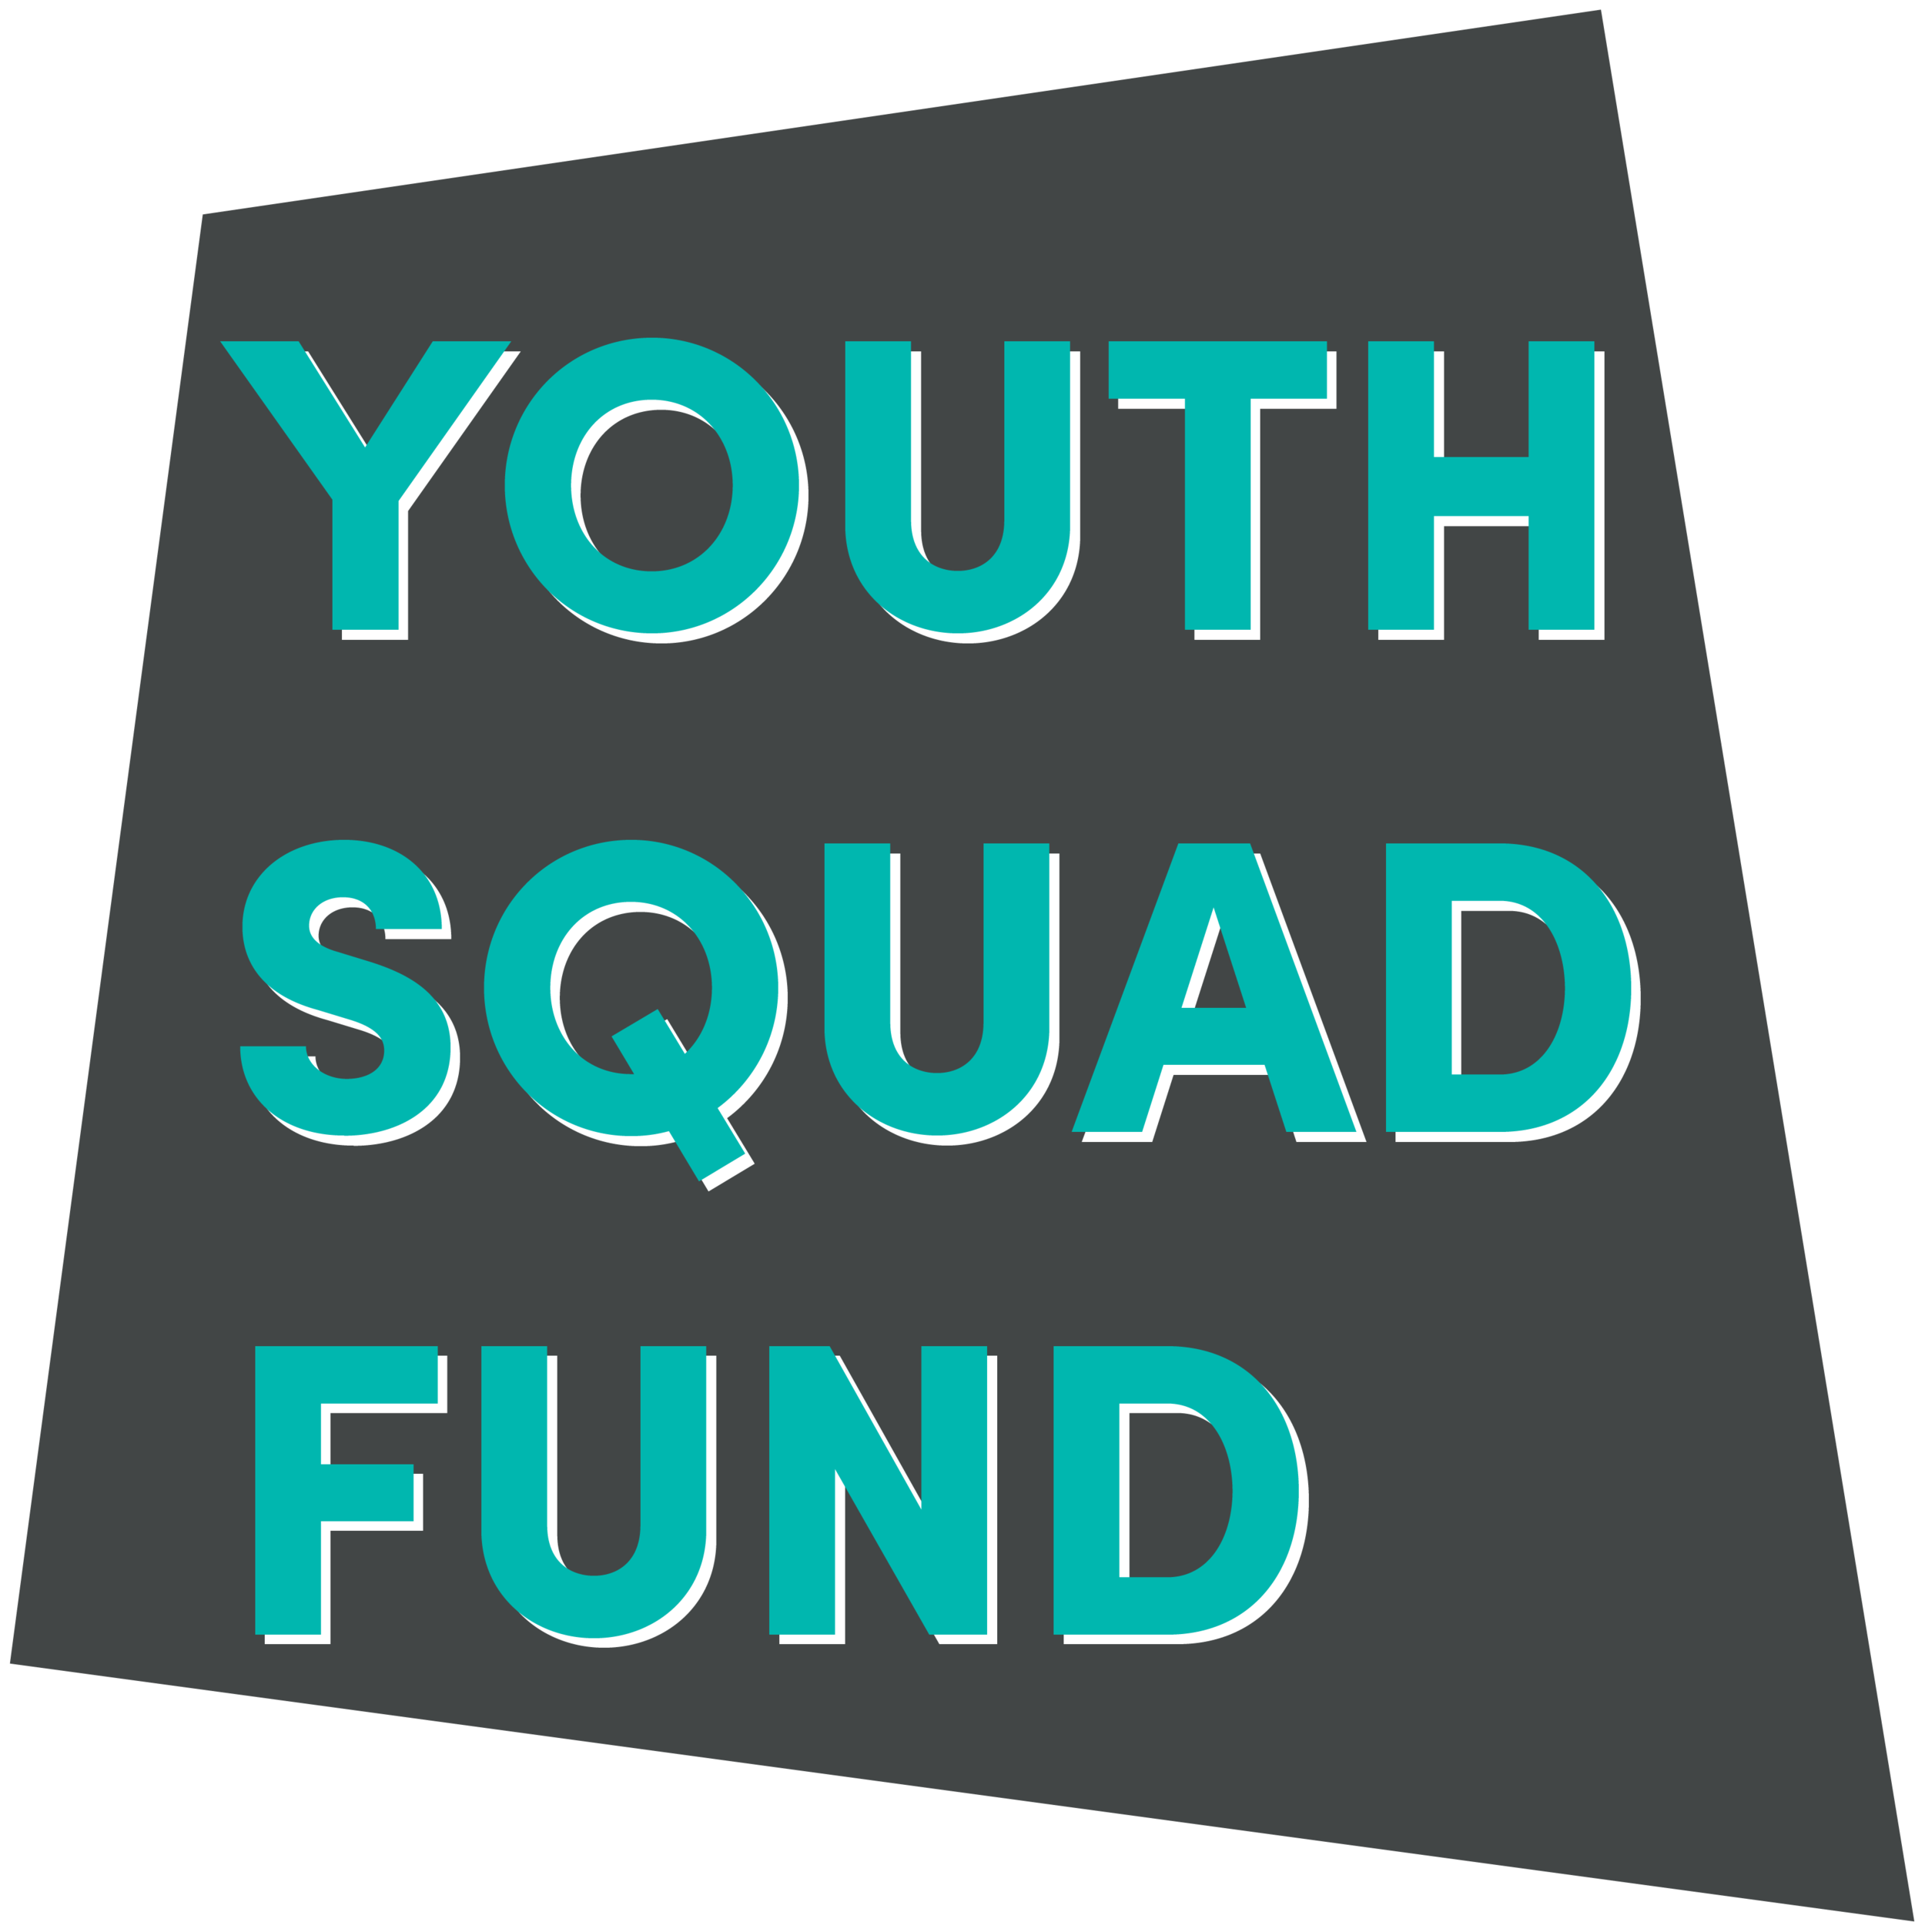 Youth Squad Fund Webiste Title-01-01.png